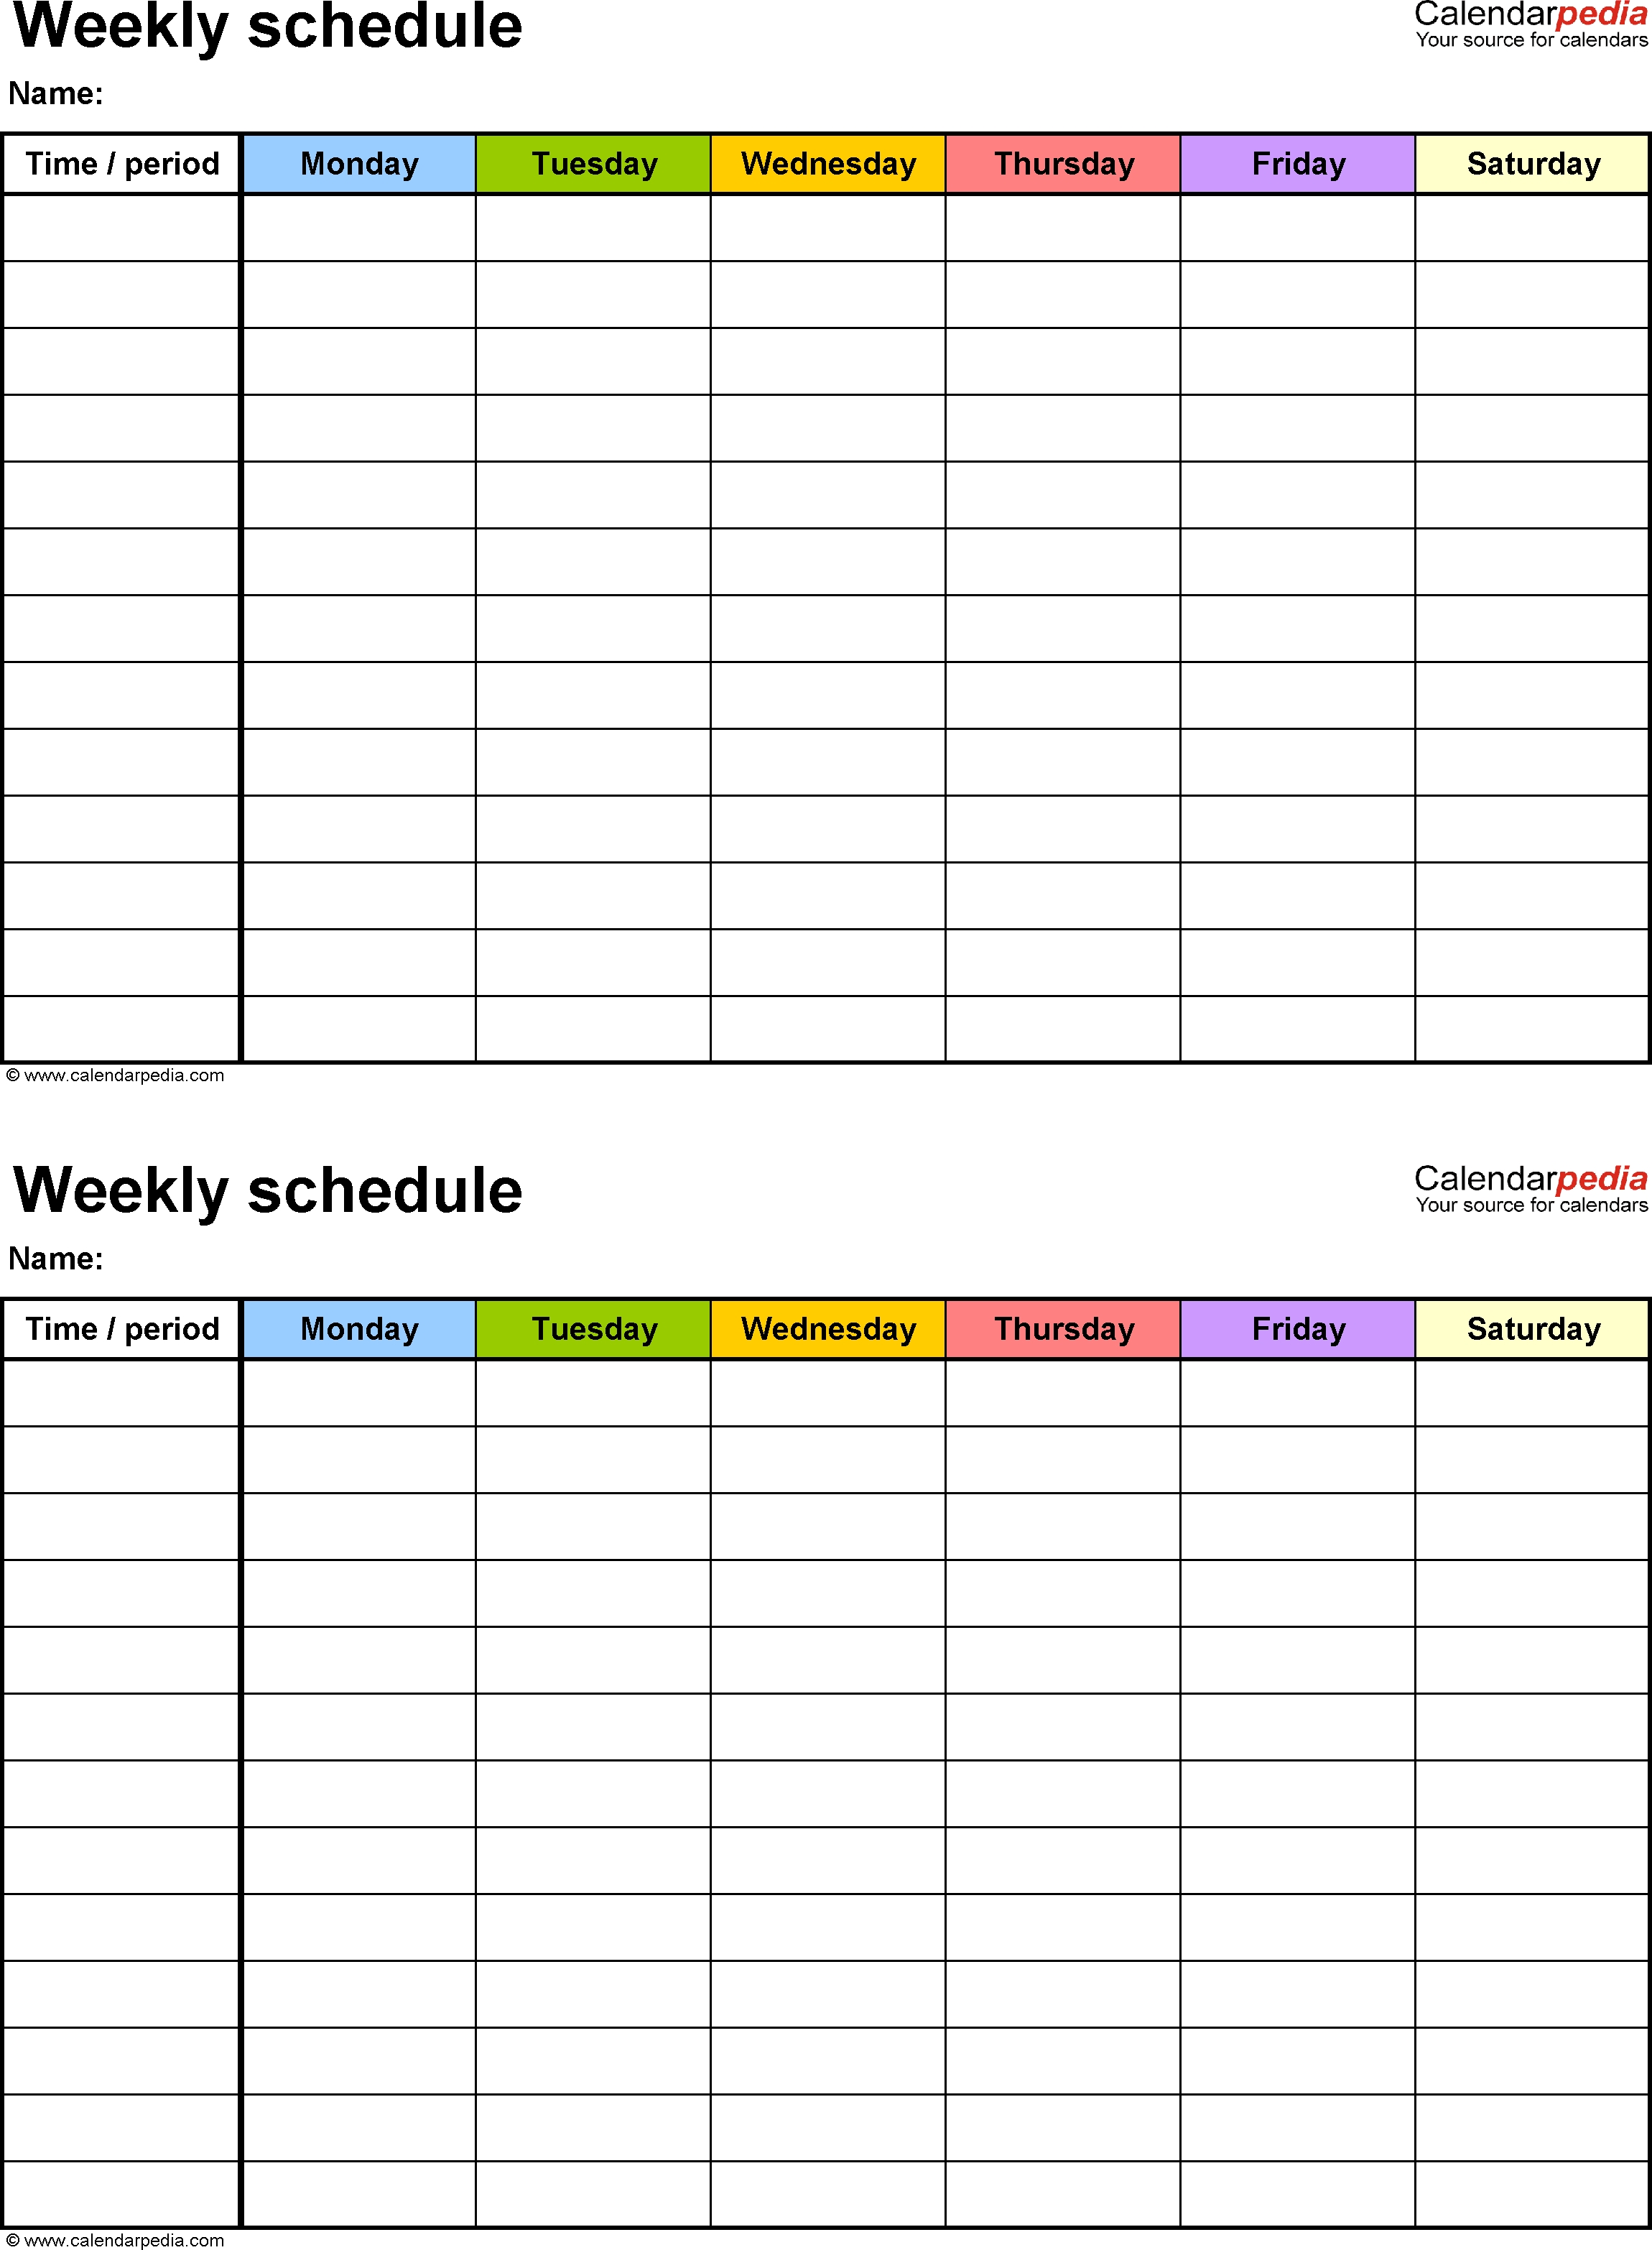 Free Weekly Schedule Templates For Word - 18 Templates with regard to Weekly Calendar Template 5 Days